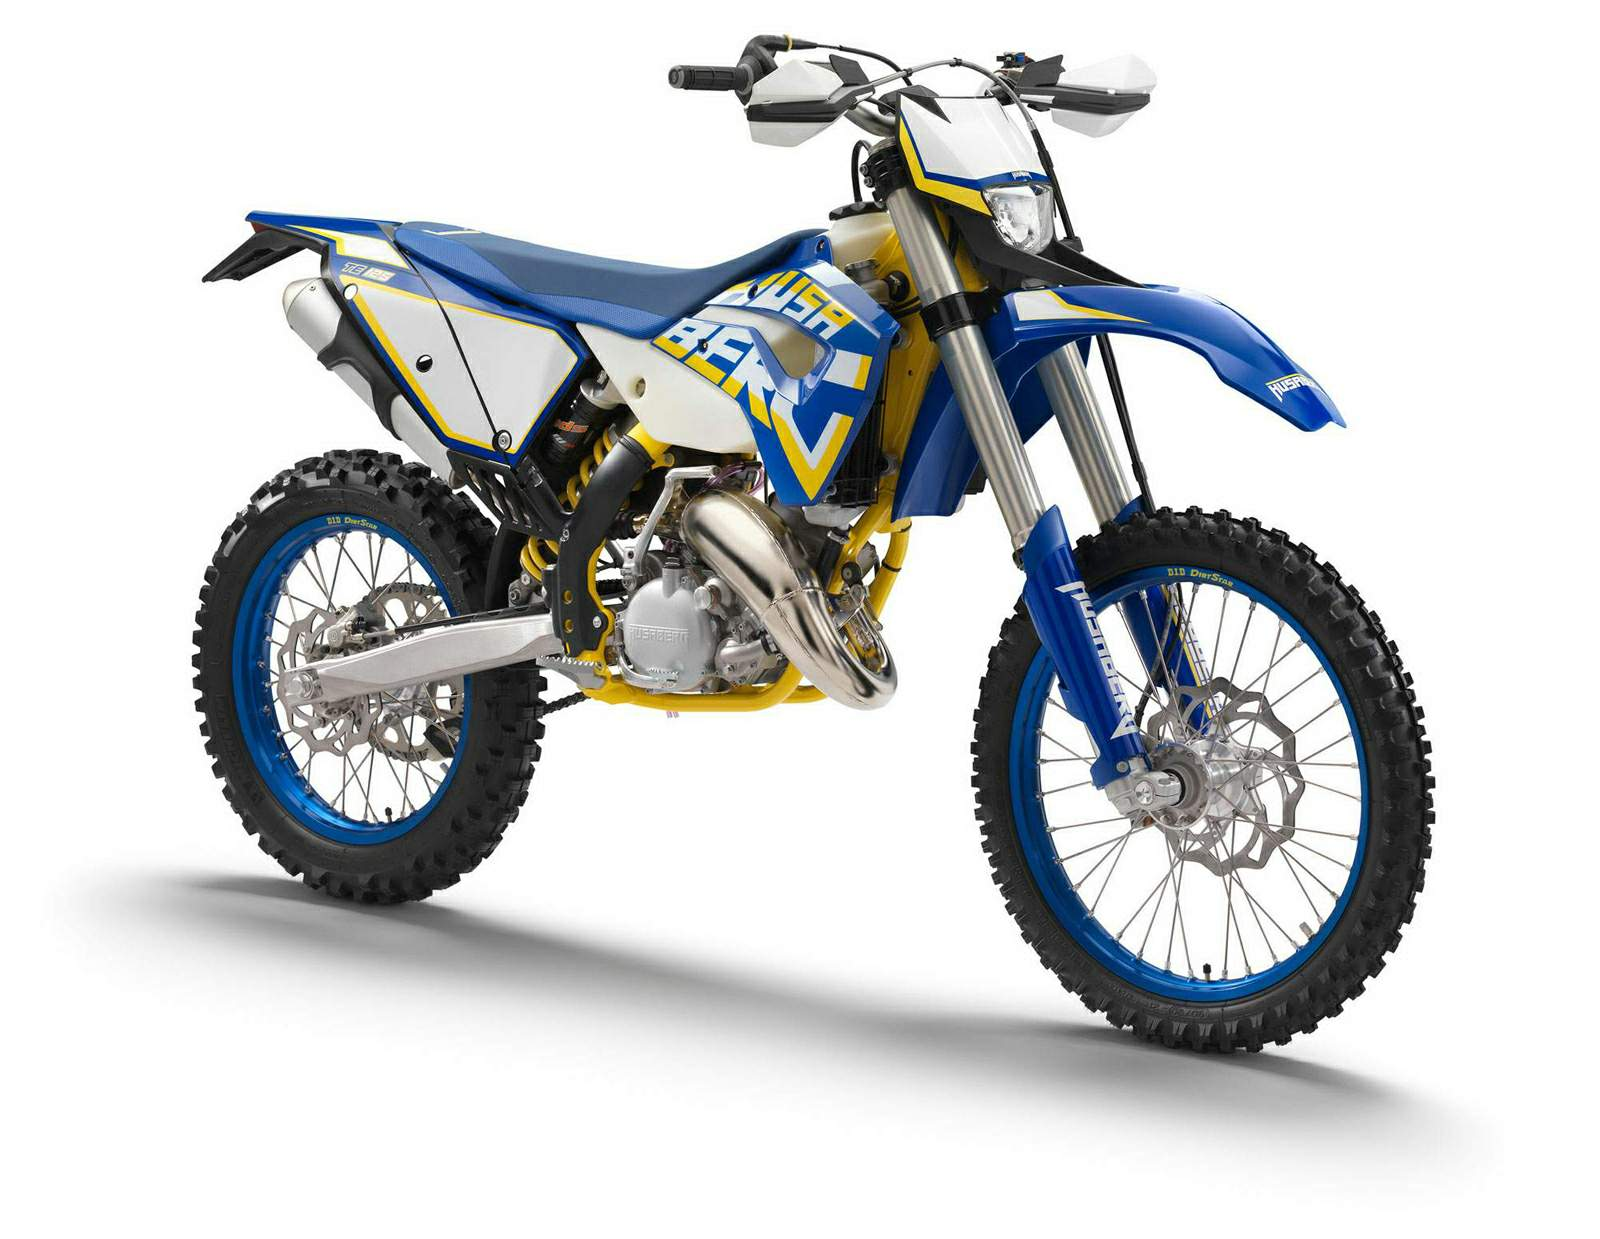 Husaberg TE 125 technical specifications